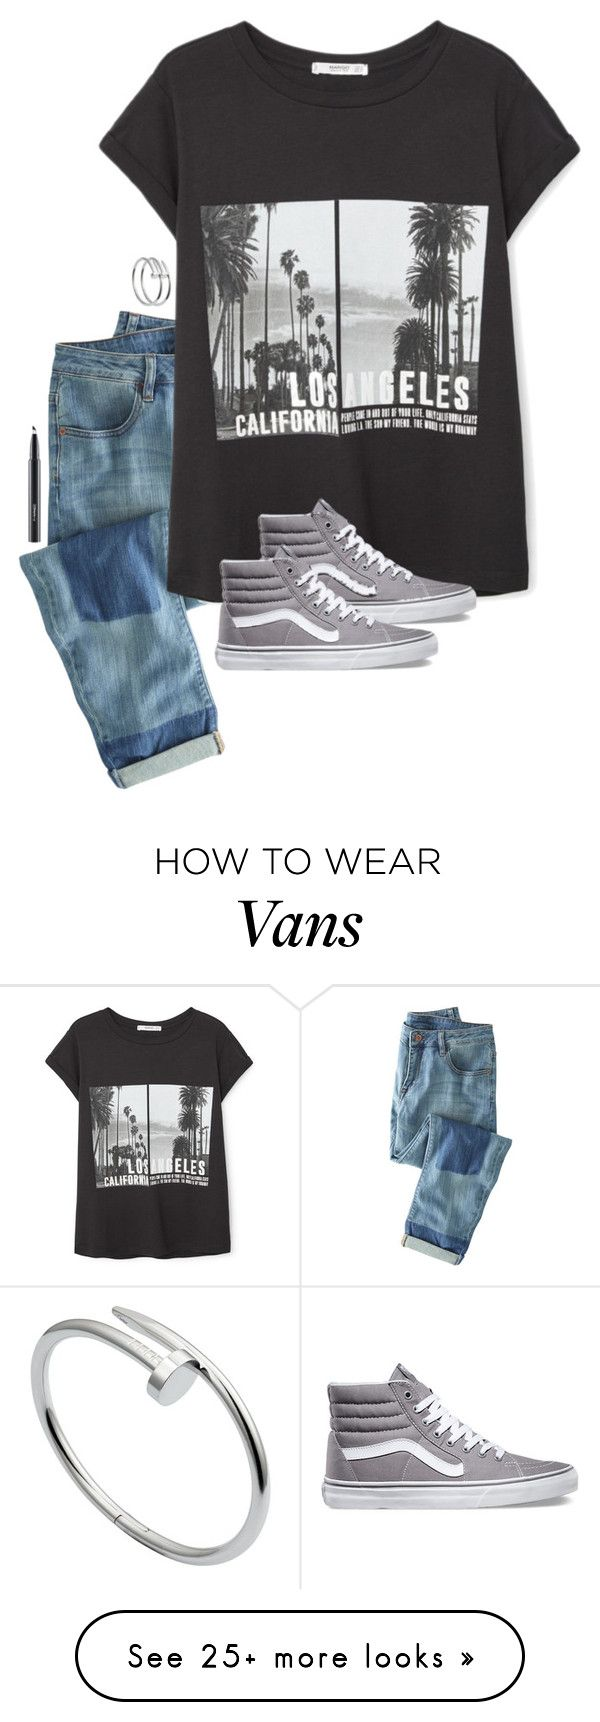 """""""and I just hope you know"""" by kenandsuch on Polyvore featuring Wrap, MANGO, Cartier, Vans, MAC Cosmetics, women's clothing, women's fashion, women, female and woman"""